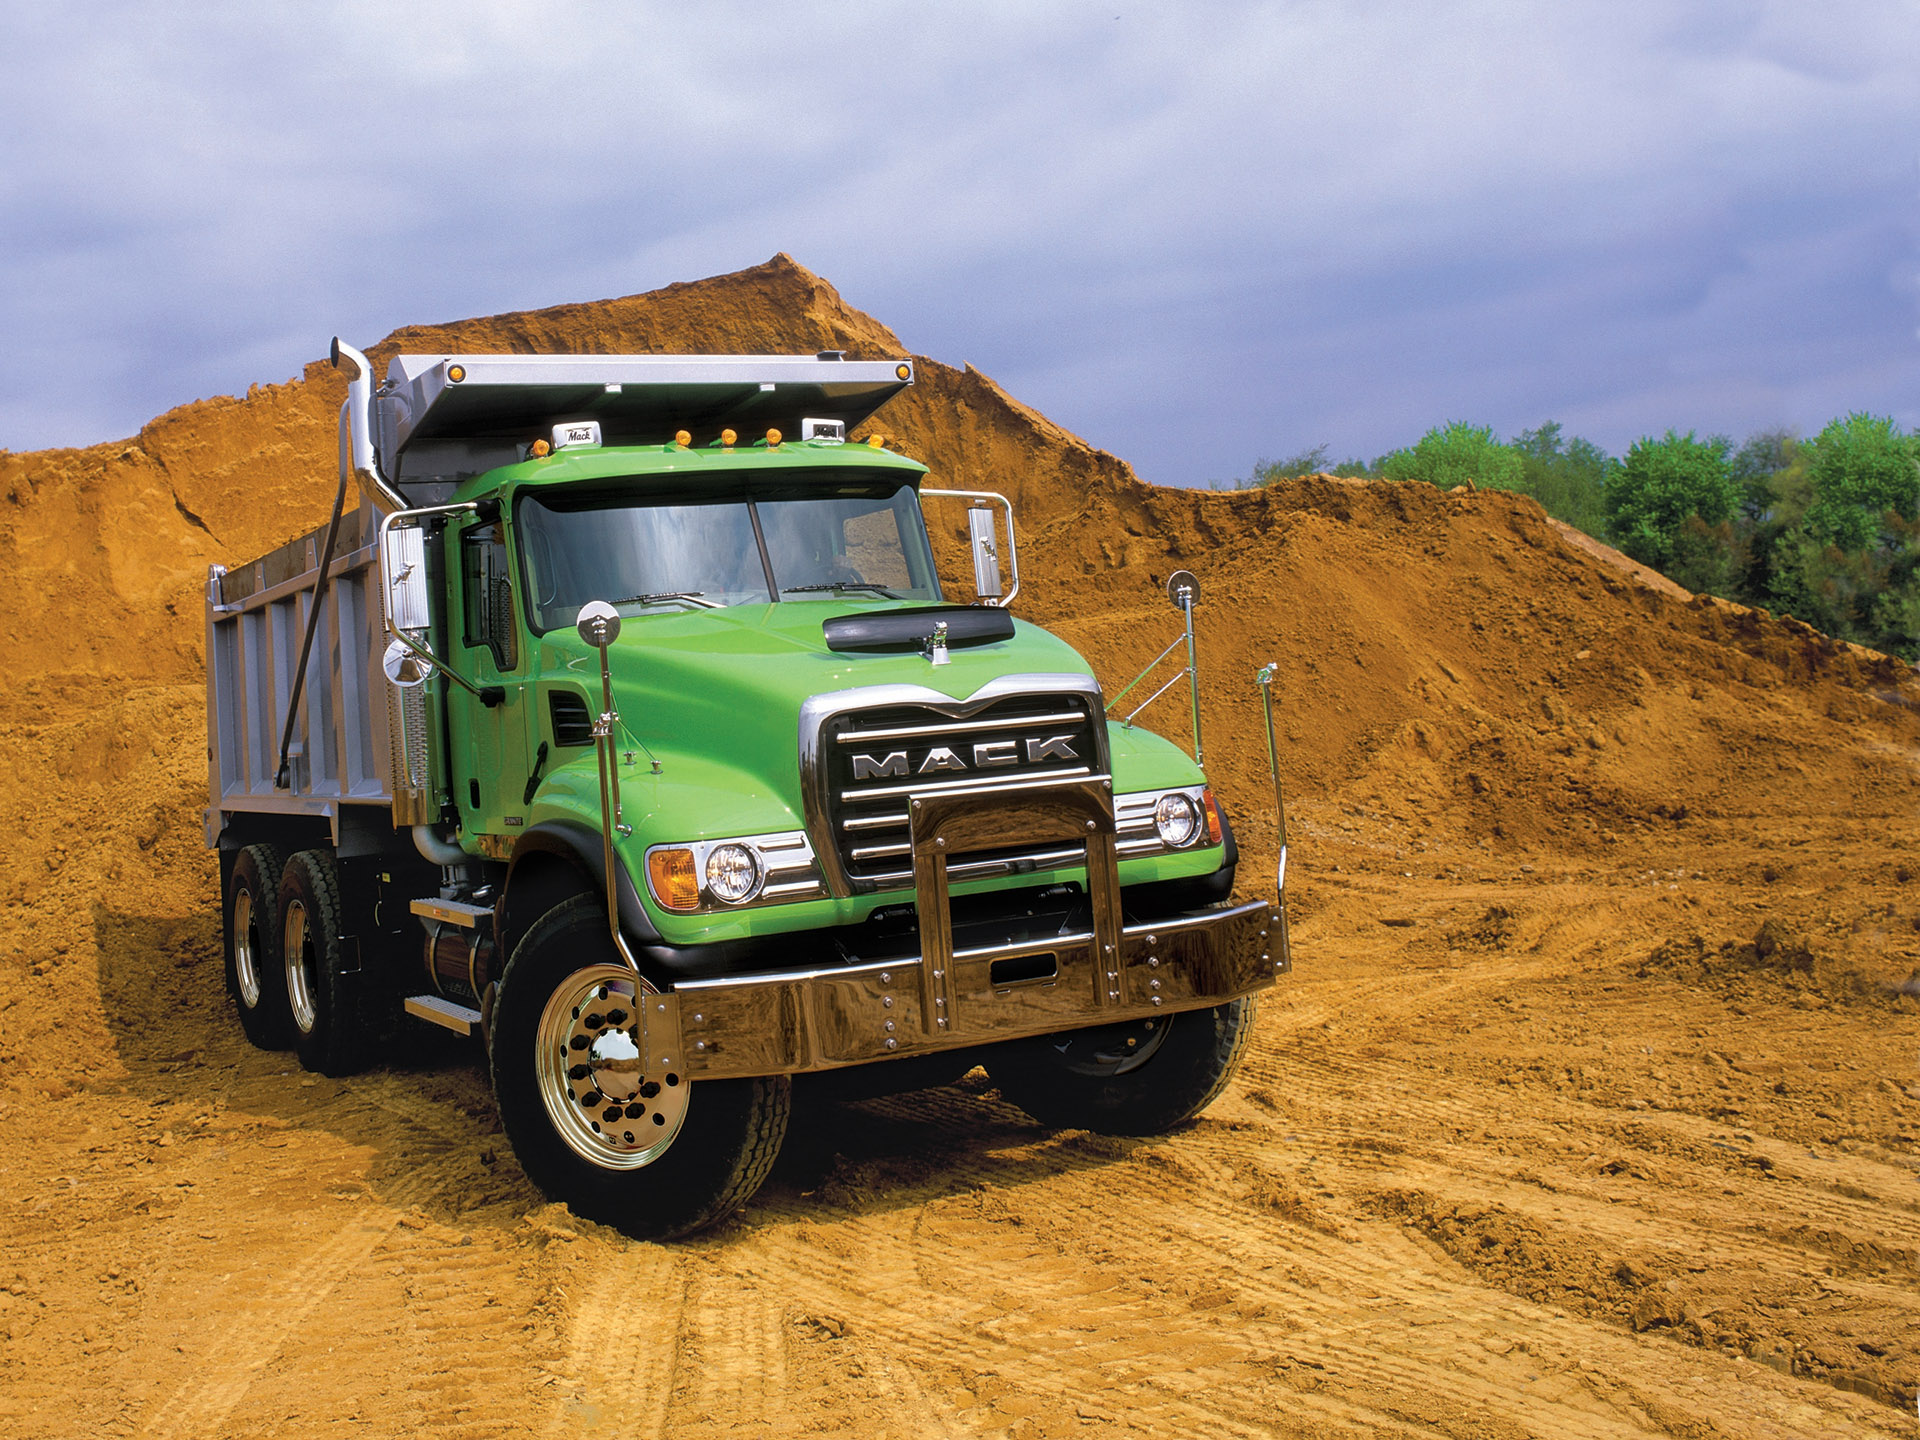 2017 Ford F450 Dump Truck >> Mack Granite: standard with Crawler mDRIVE – I-Shift – Iepieleaks